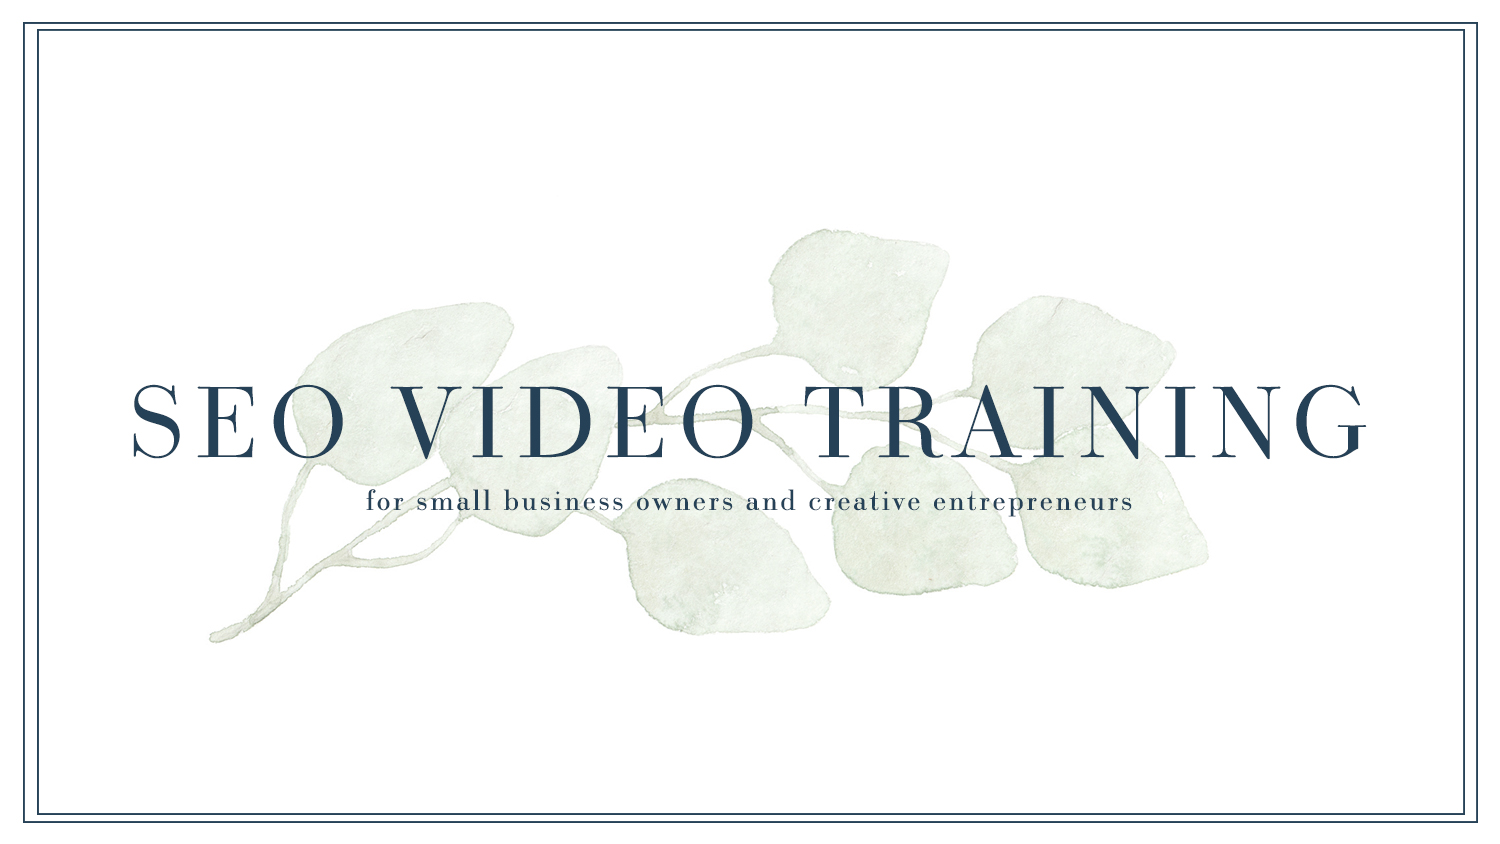 SEO-video-training